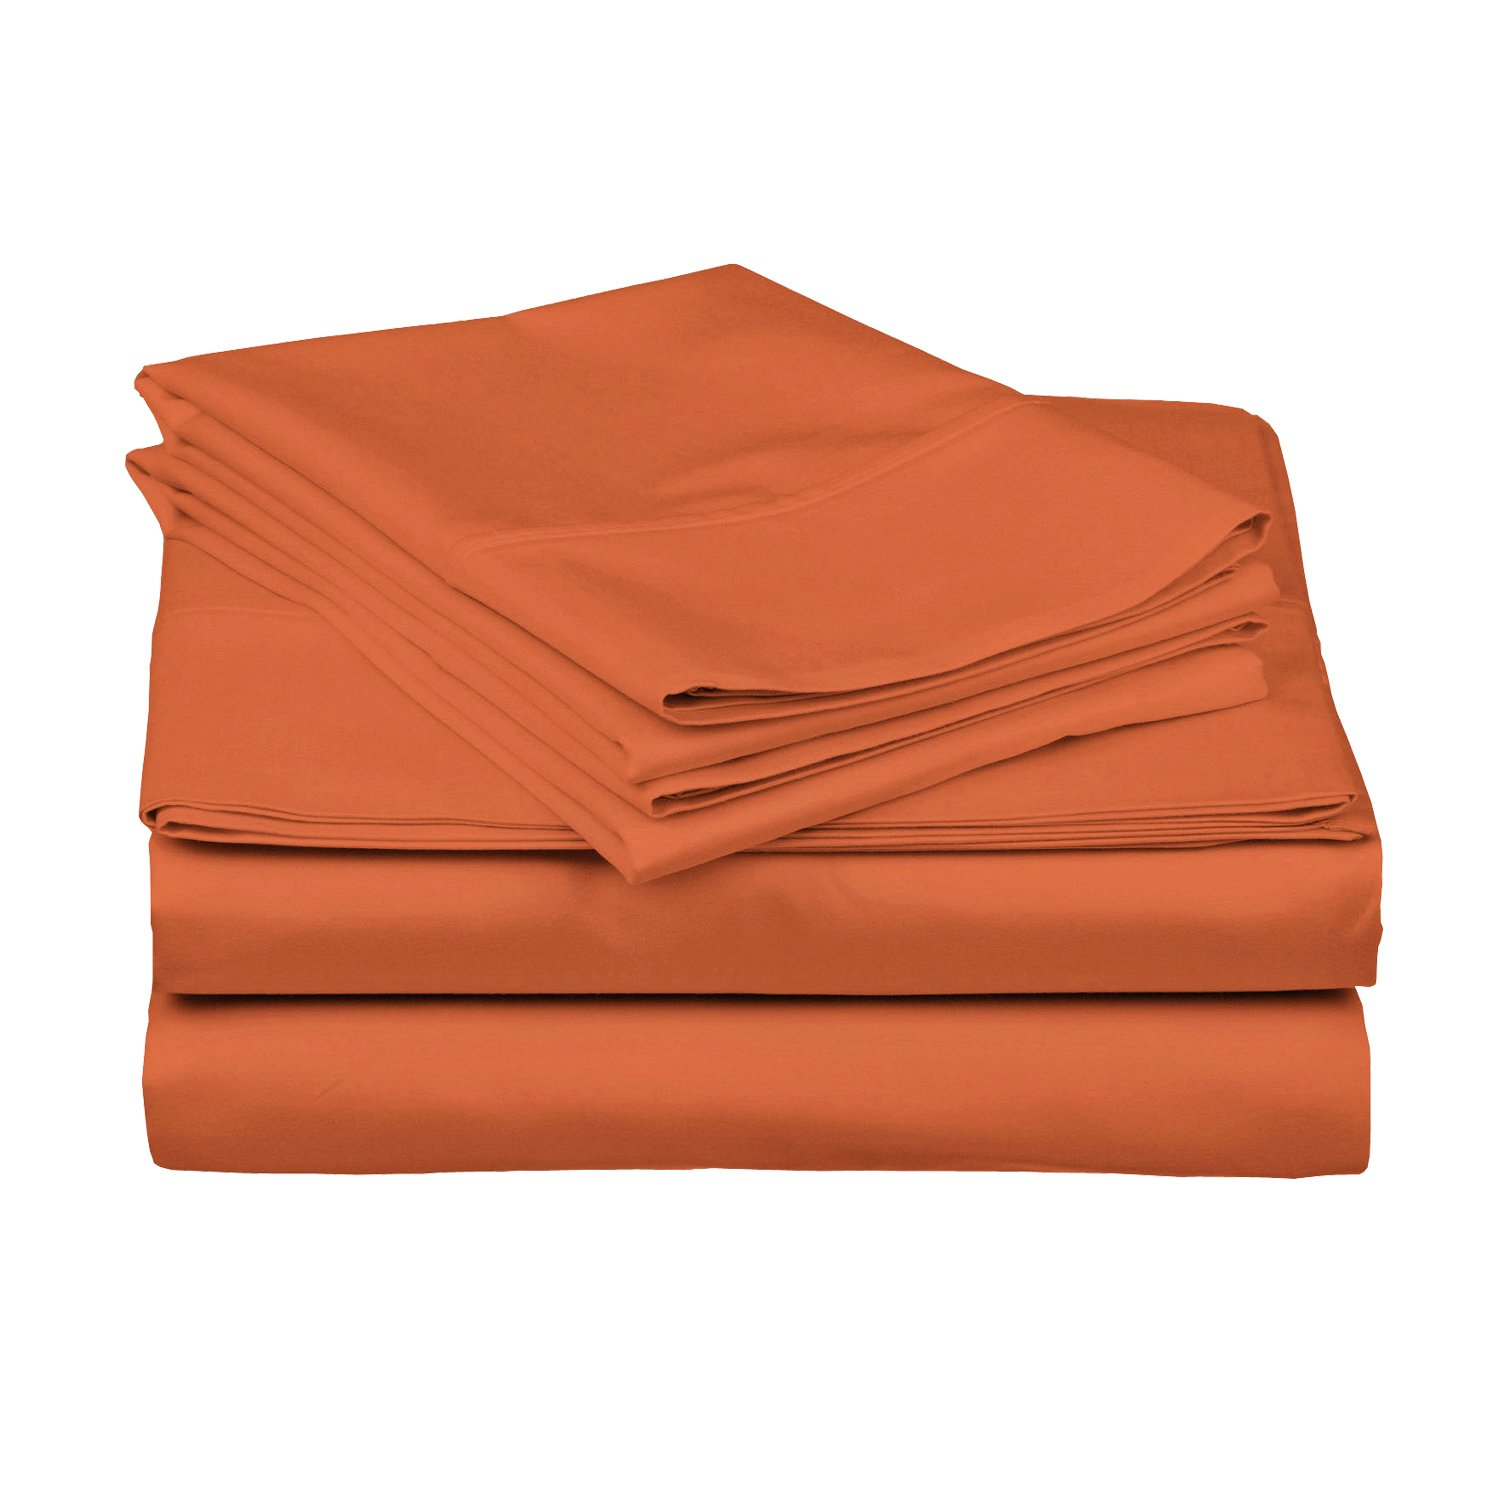 3 Piece Twin Pumpkin Bed Sheet Set, Ultra cozy, super soft, lightweight, durable, satiny smooth, Fully Elasticized, Sateen weave with 300 thread count, Dark Orange, Cotton